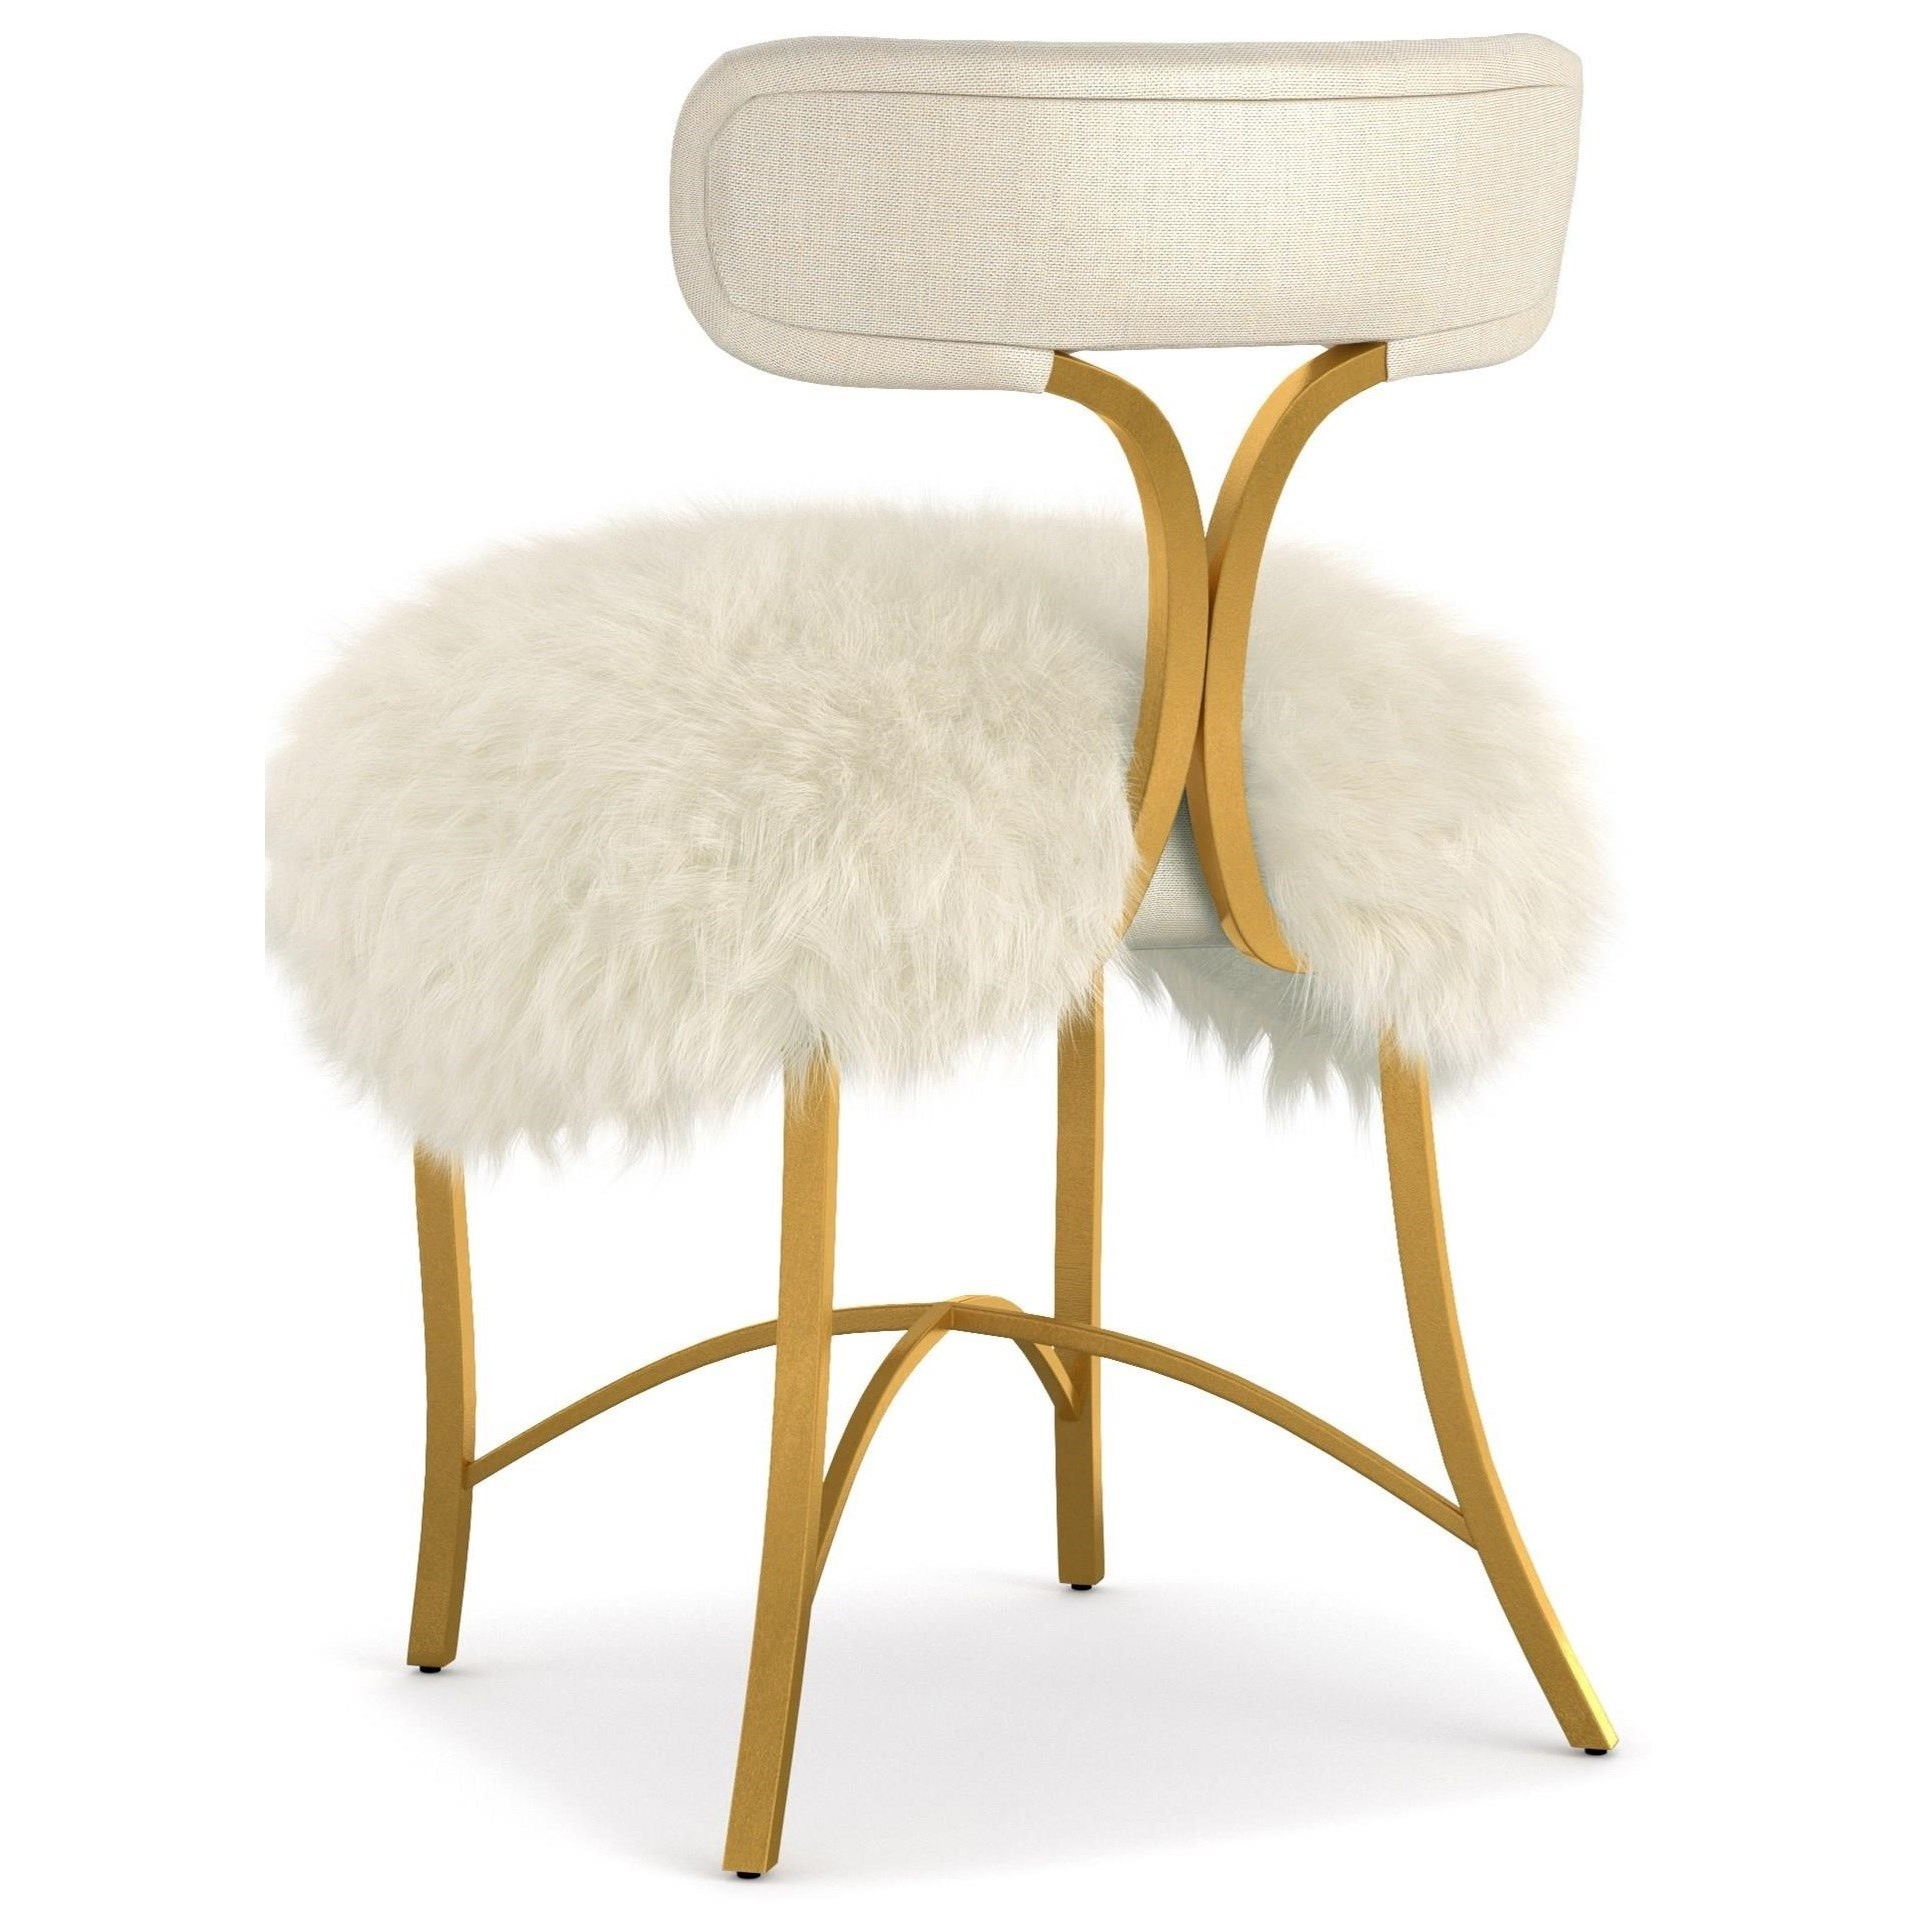 cynthia rowley chairs for sale nylon chair glides hooker furniture